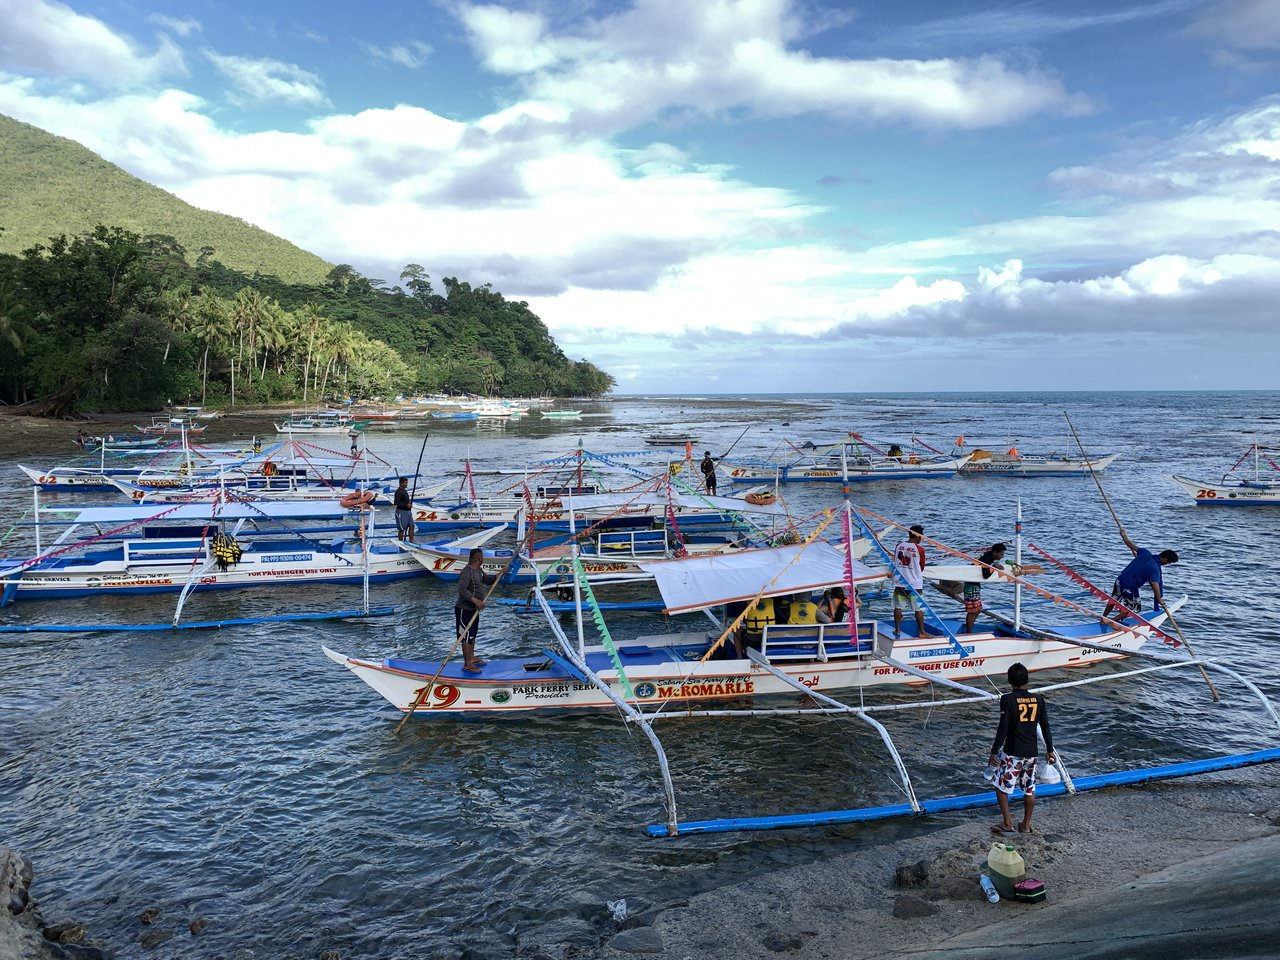 Outriggers by the jetty | Photo taken by Debajyoti R